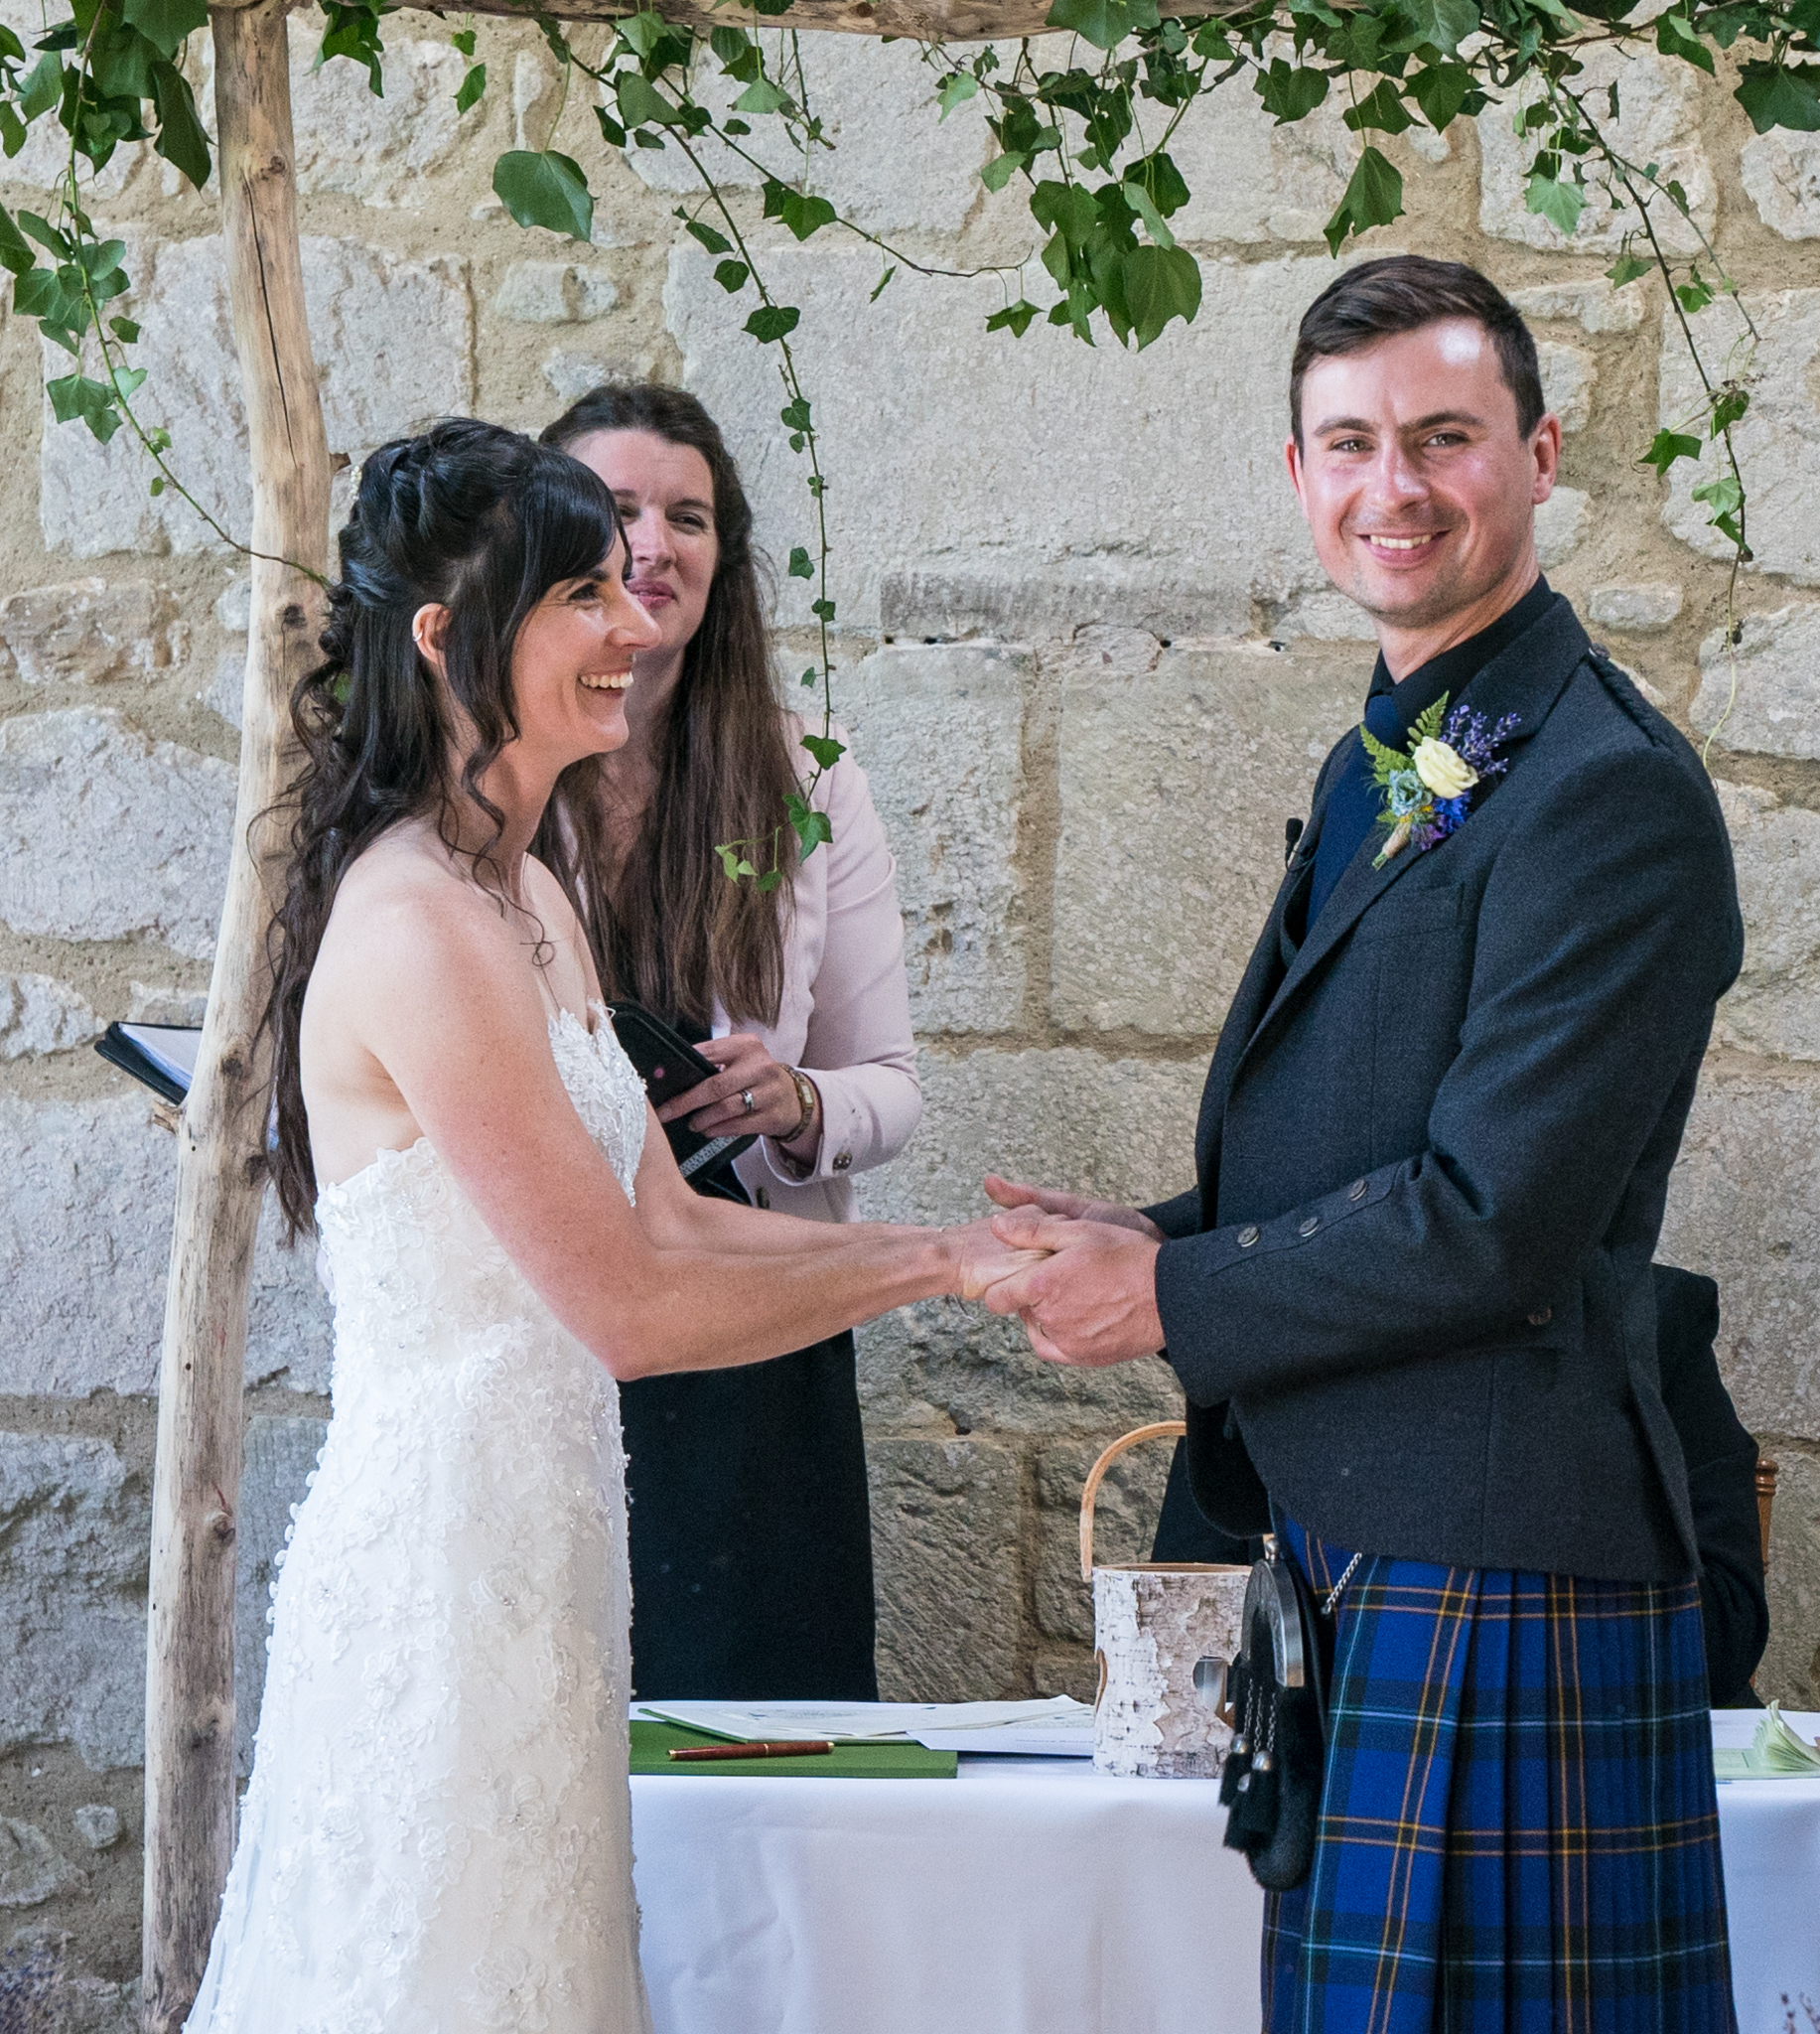 Nat & Pete-June 2017-Ceremony (47 of 60).jpg